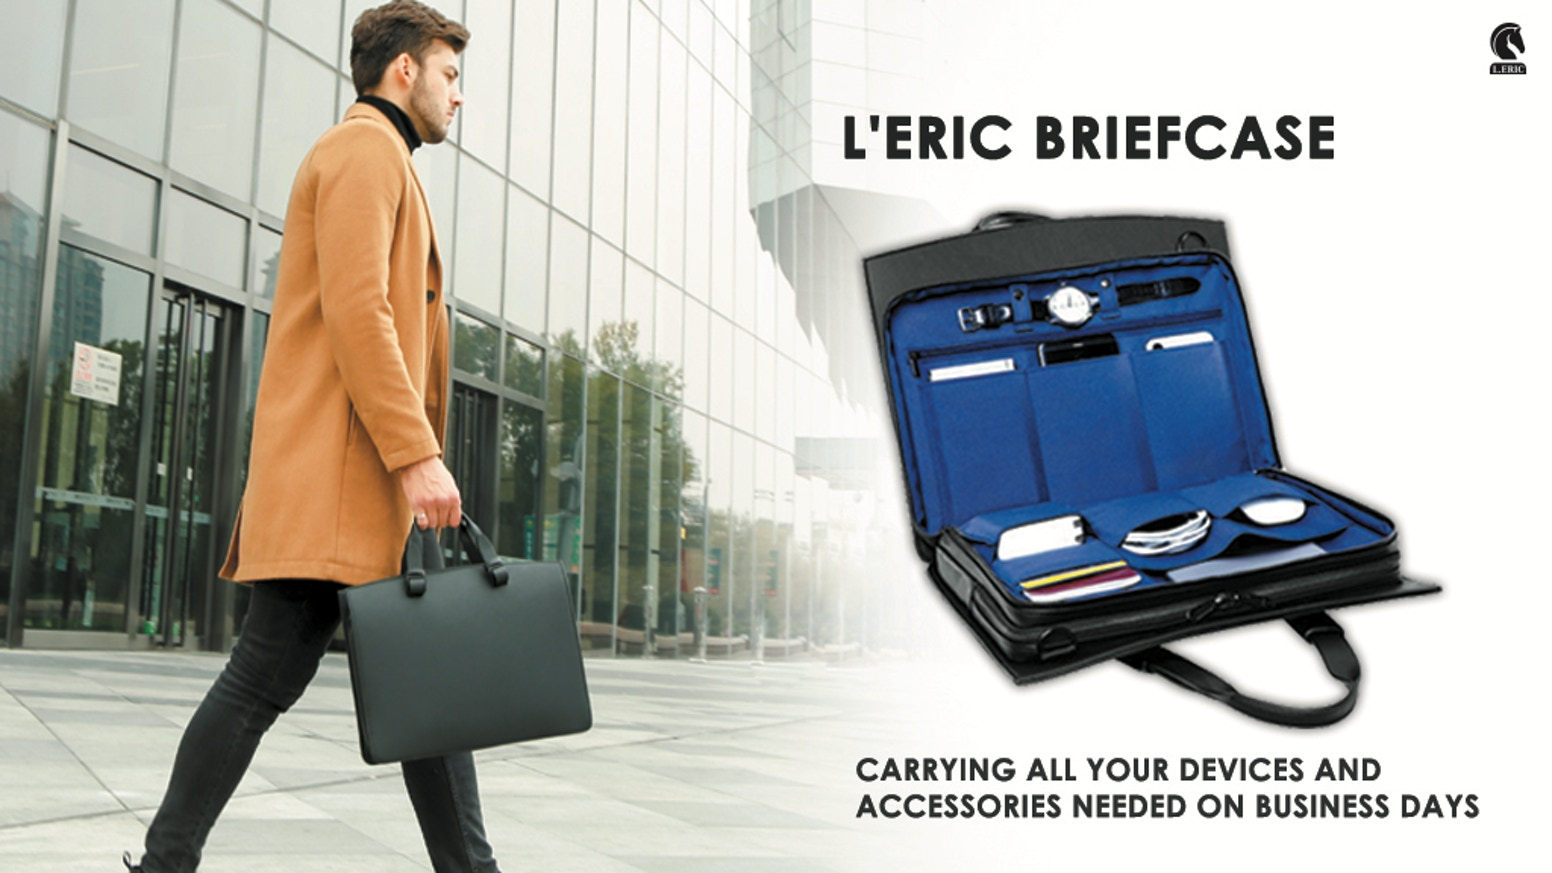 A briefcase carrying all your devices and accessories needed on business days.